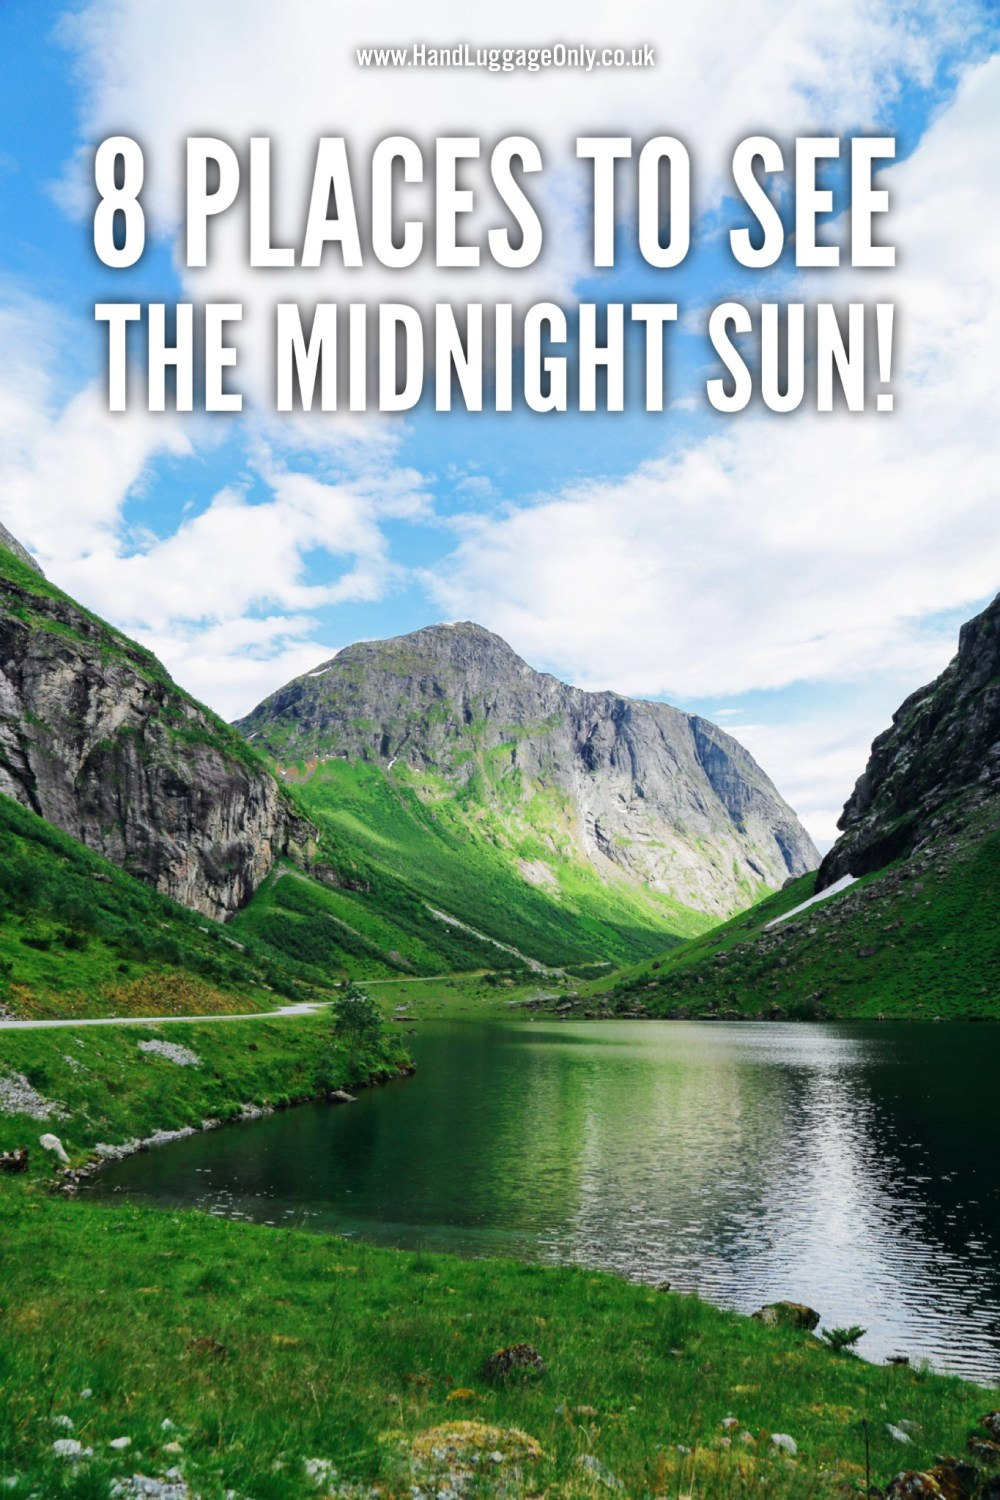 8 Countries To Visit To See The Midnight Sun